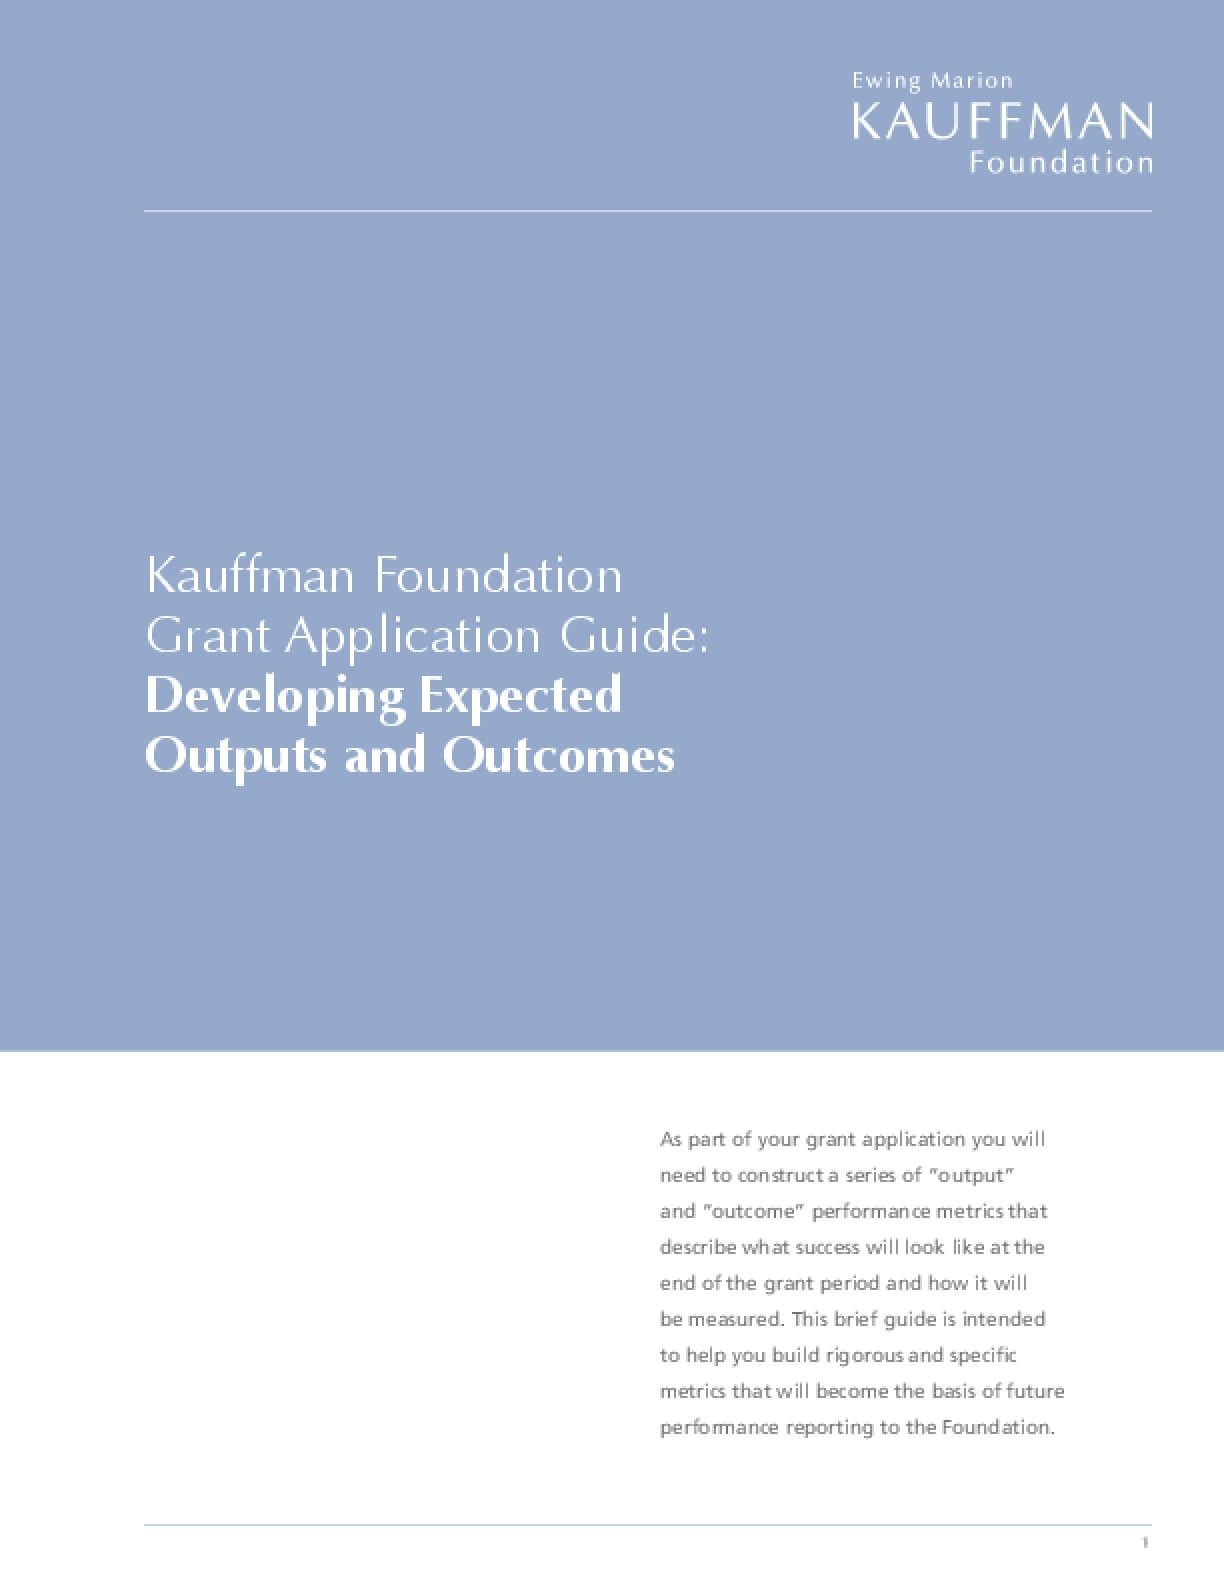 Kauffman Foundation Grant Application Guide: Developing Expected Outputs and Outcomes